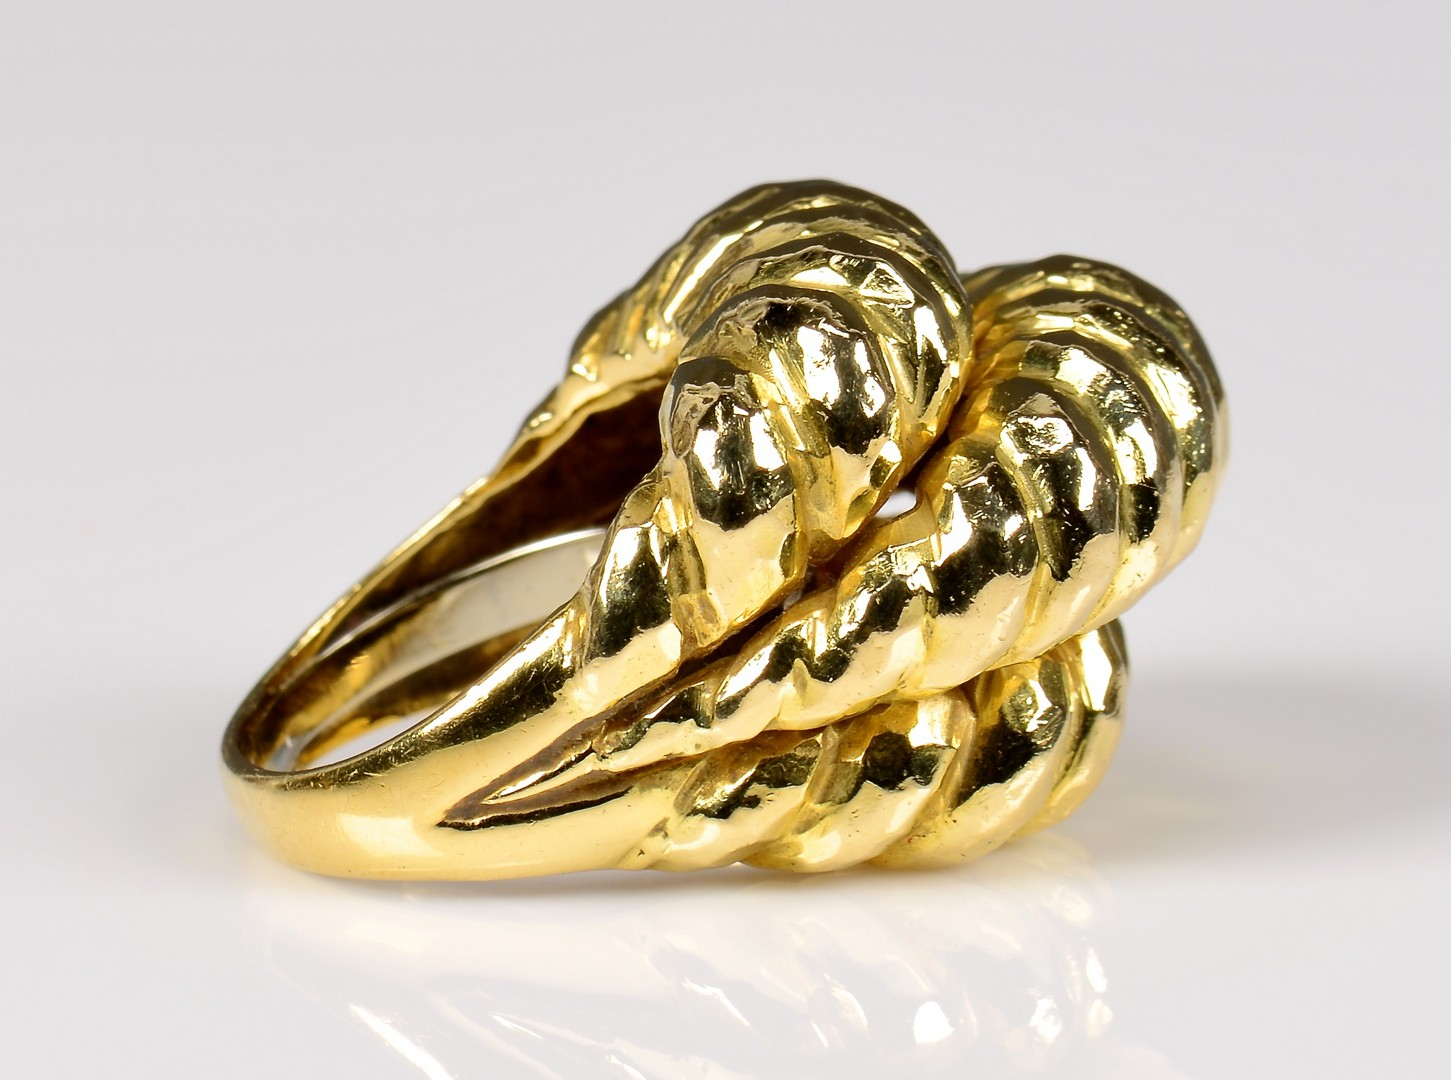 Lot 73: 18K David Webb ring, 31.7 grams